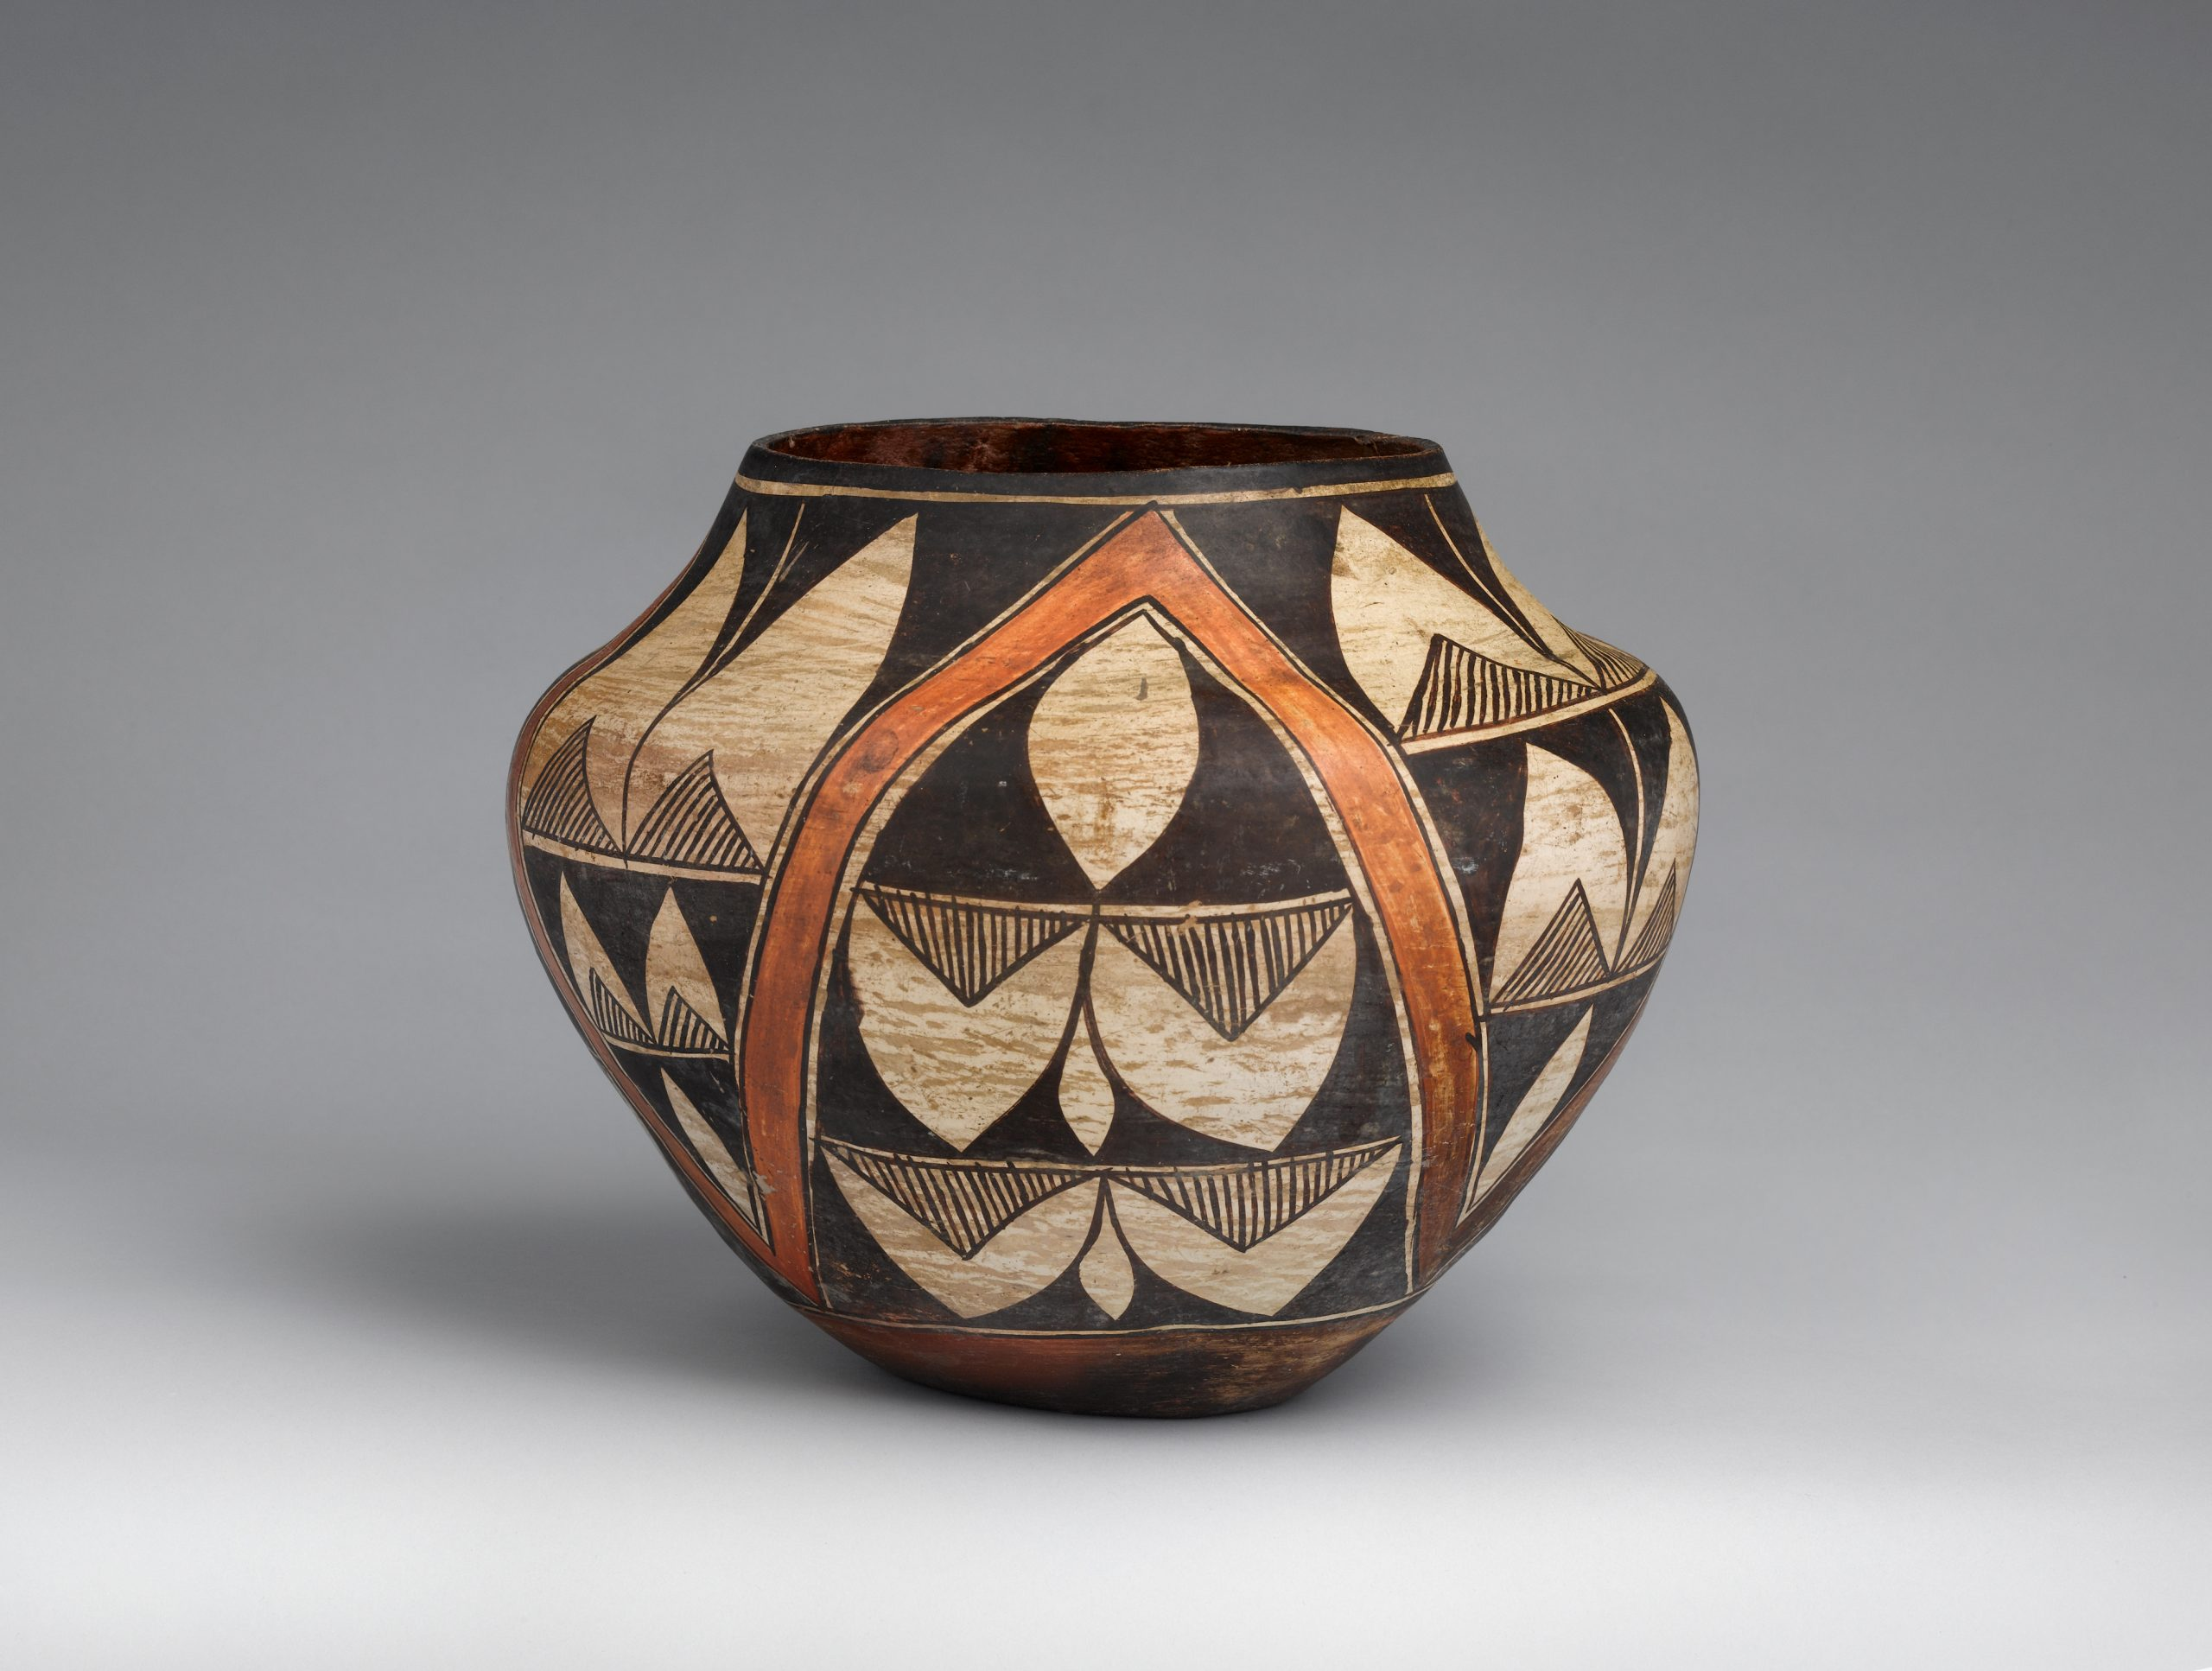 A small Acoma pot with a design primarily composed of lines and triangular shapes.